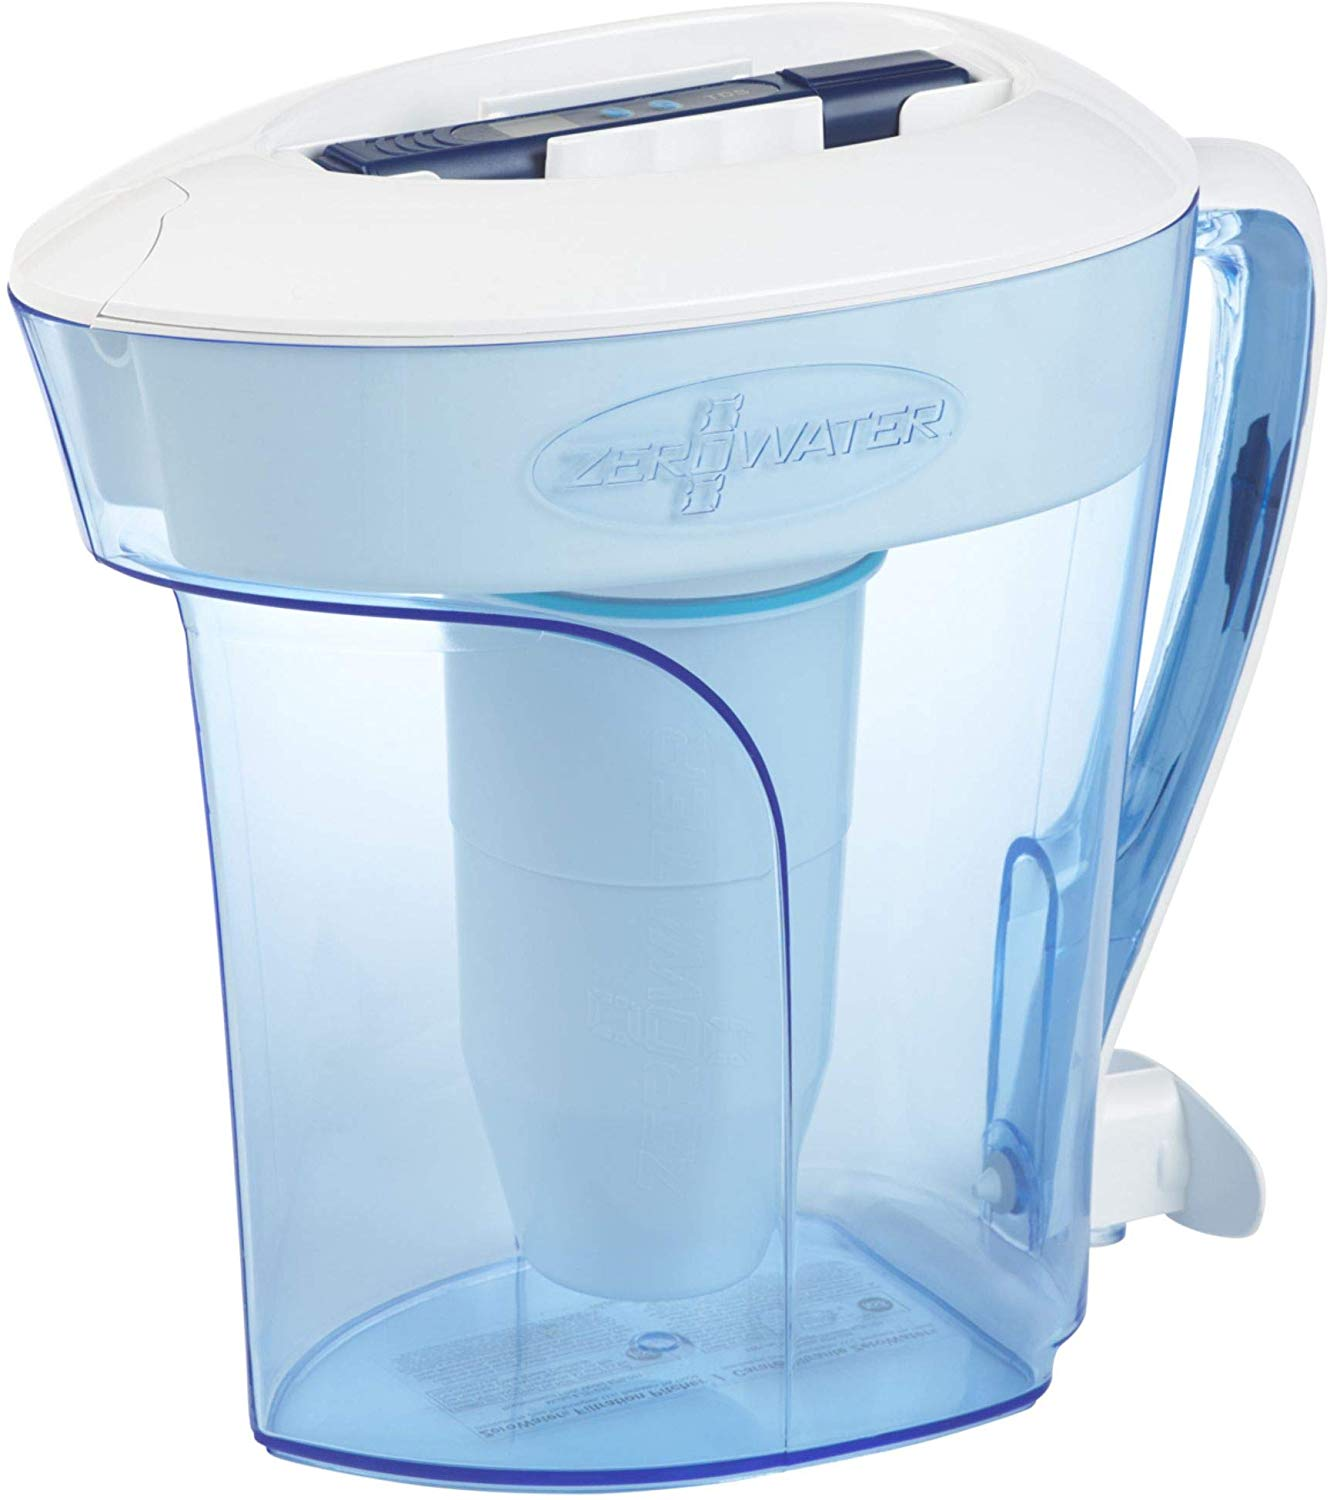 Best Water Filters For Clean Drinking Water